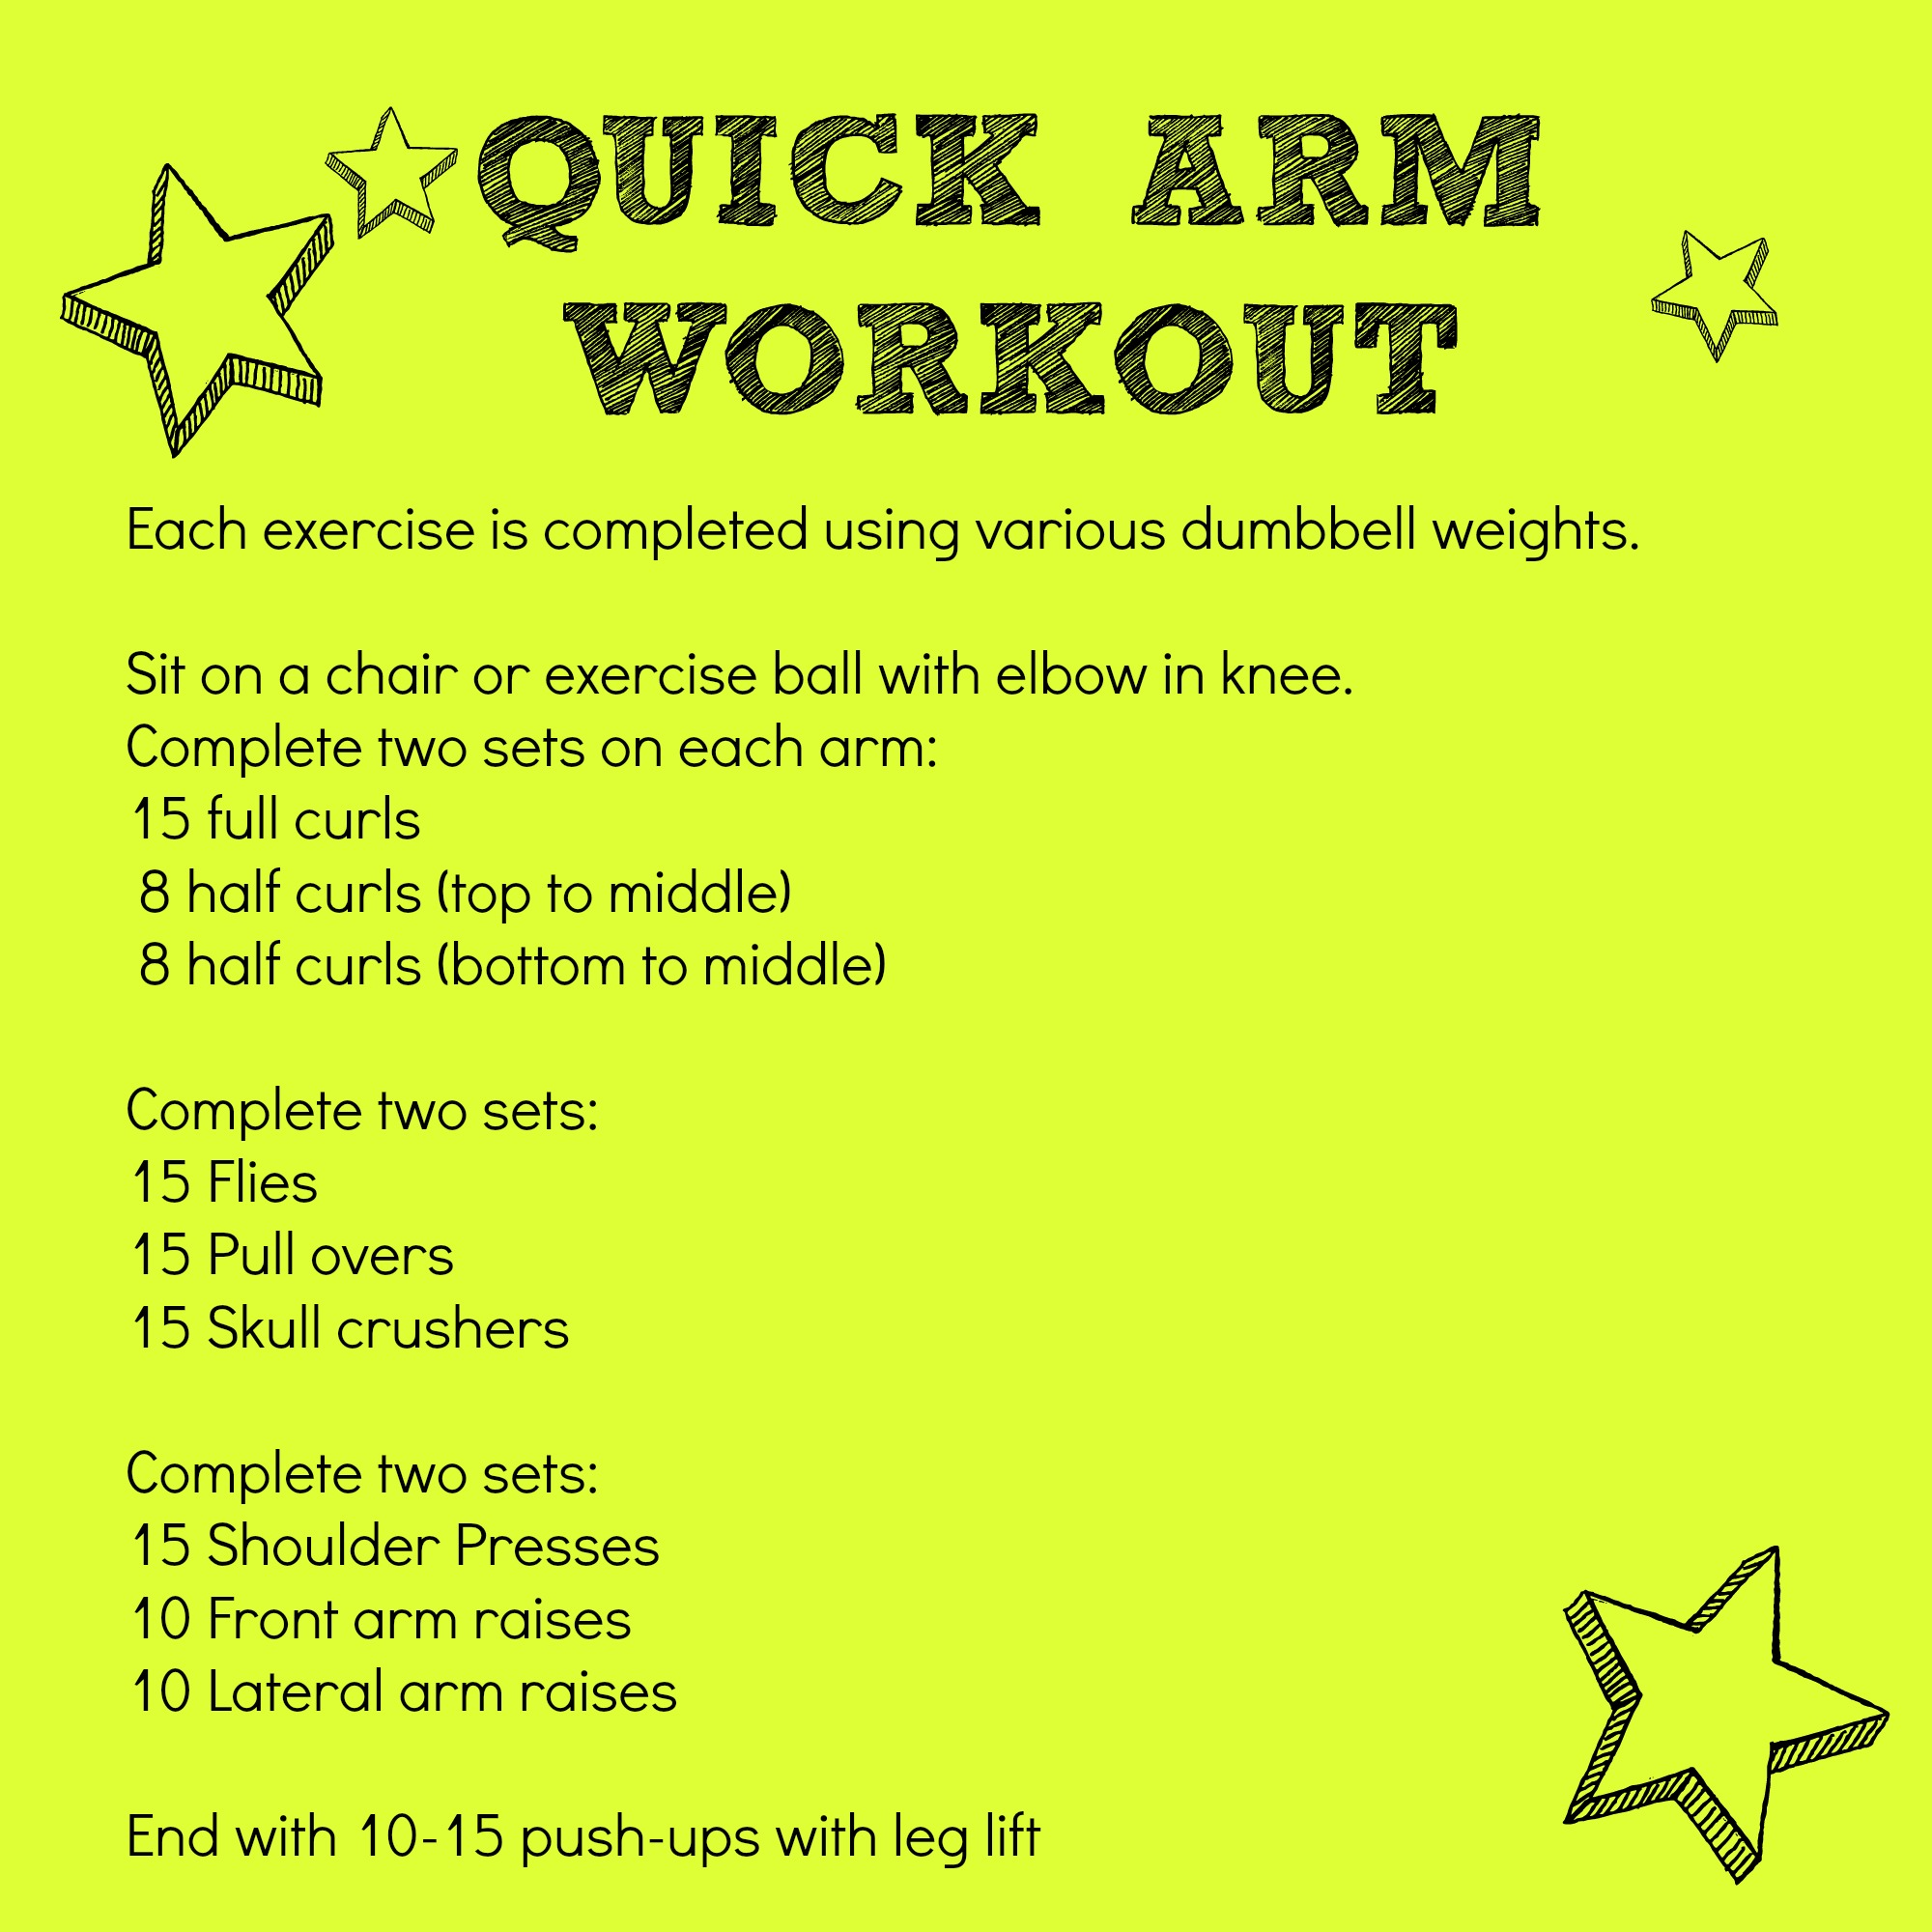 Quick ab workout routine, liquid nutritional supplements ...